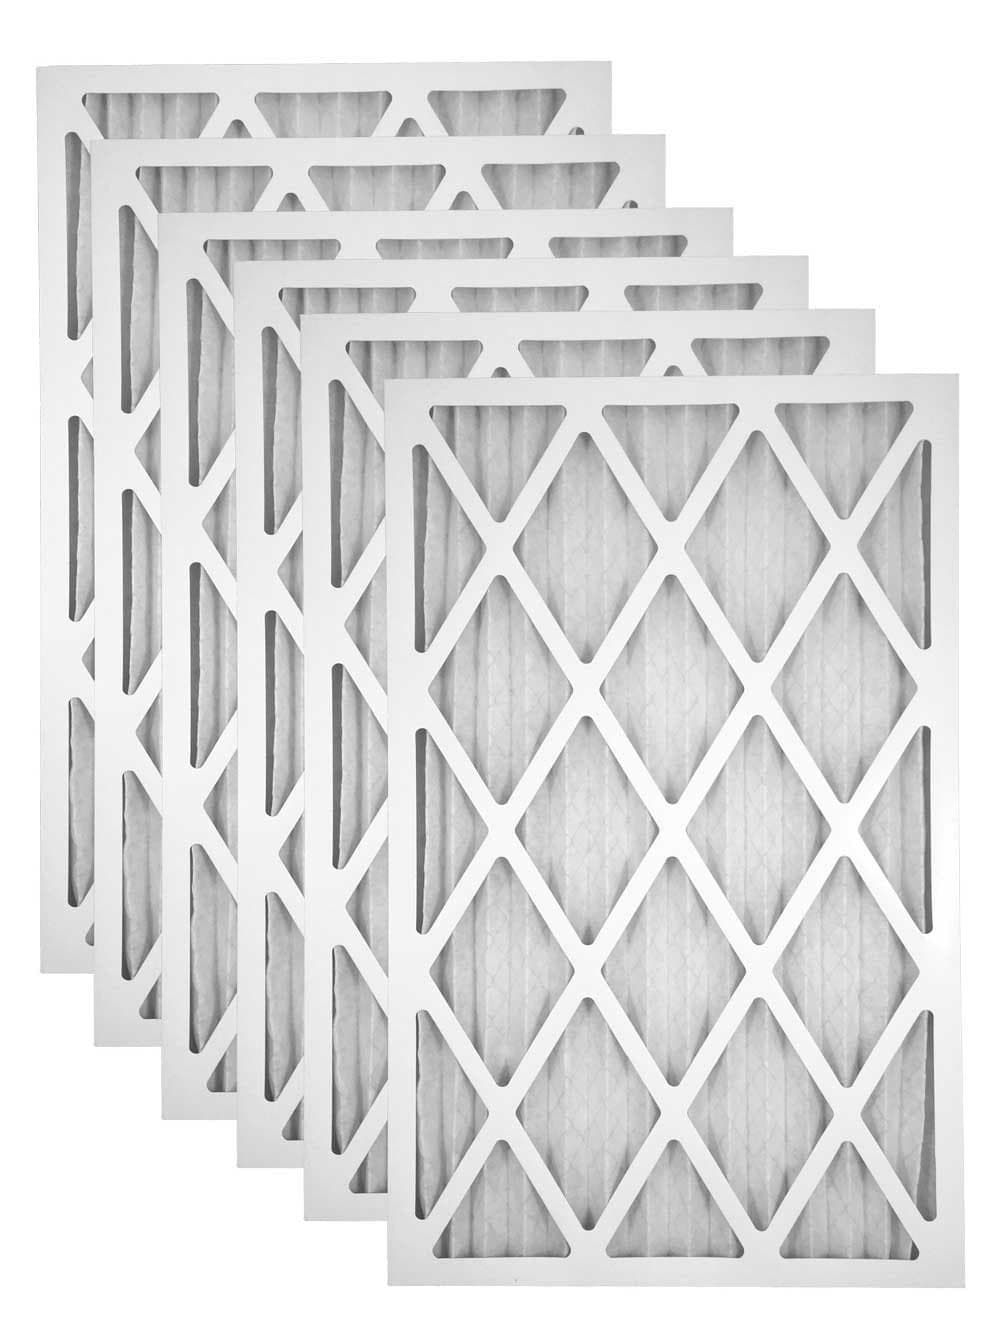 13x21.5x1 Merv 8 AC Furnace Filter - Case of 6